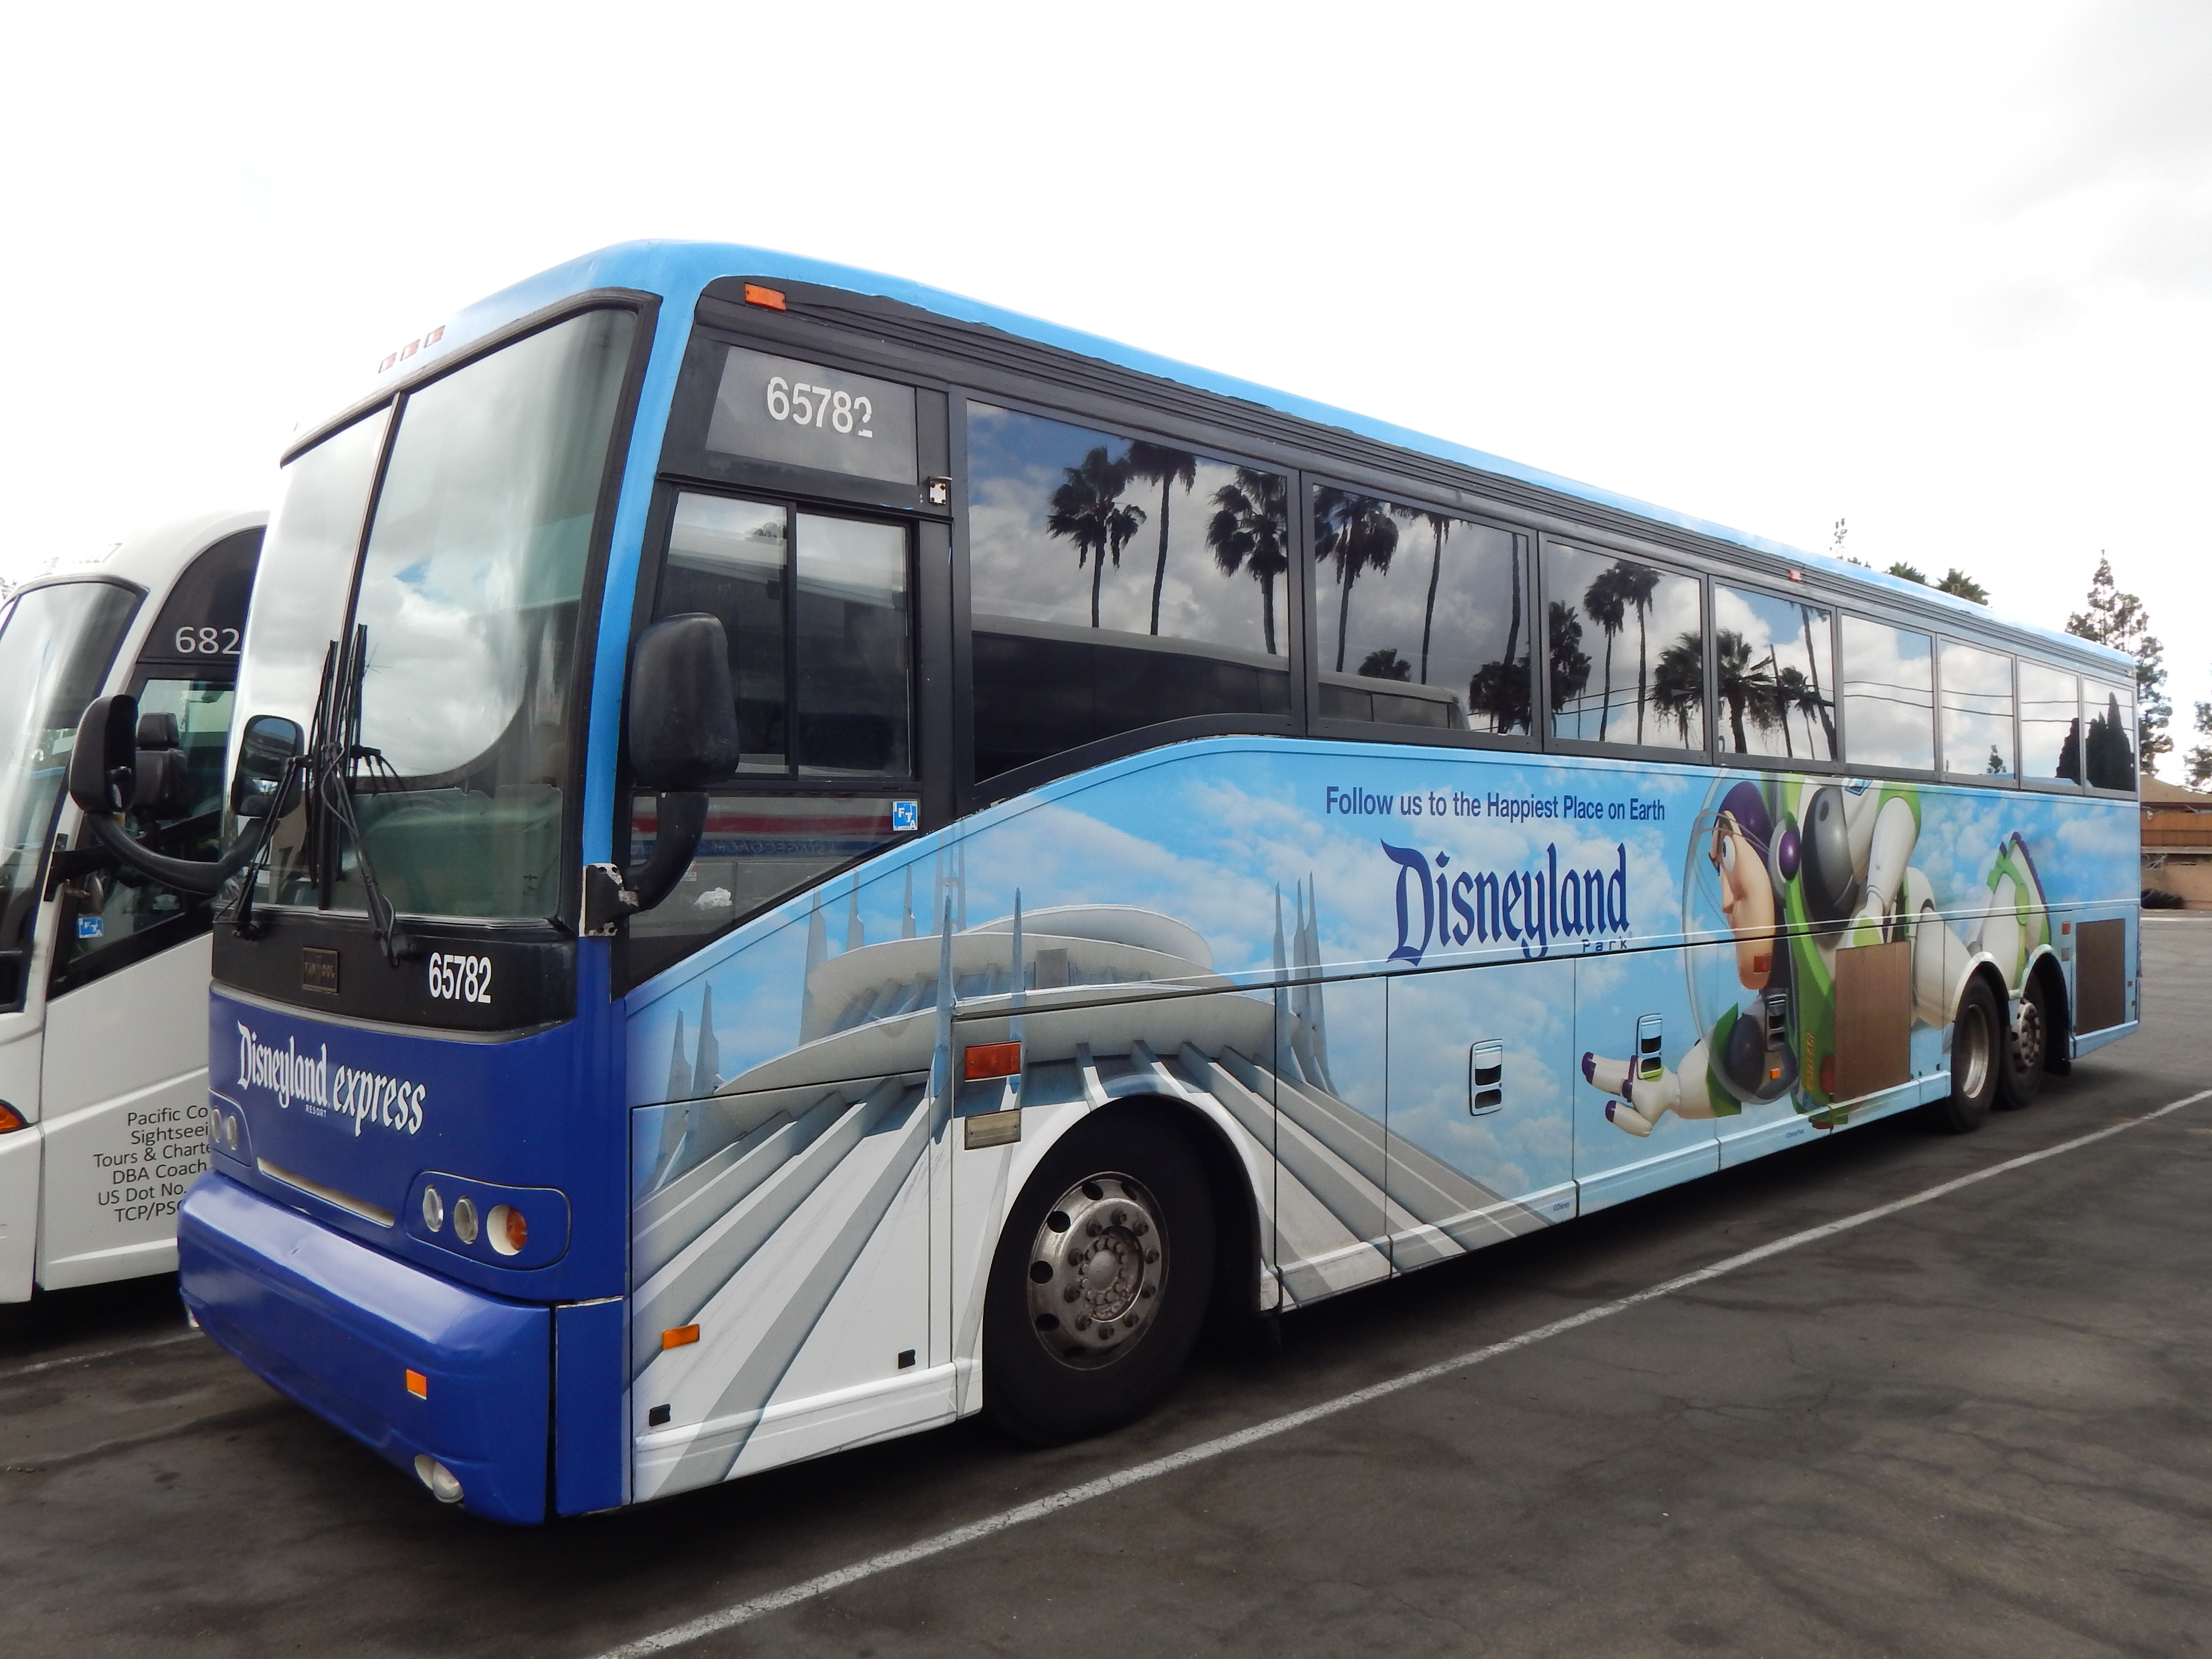 Lax Airport Hotel Shuttle Service